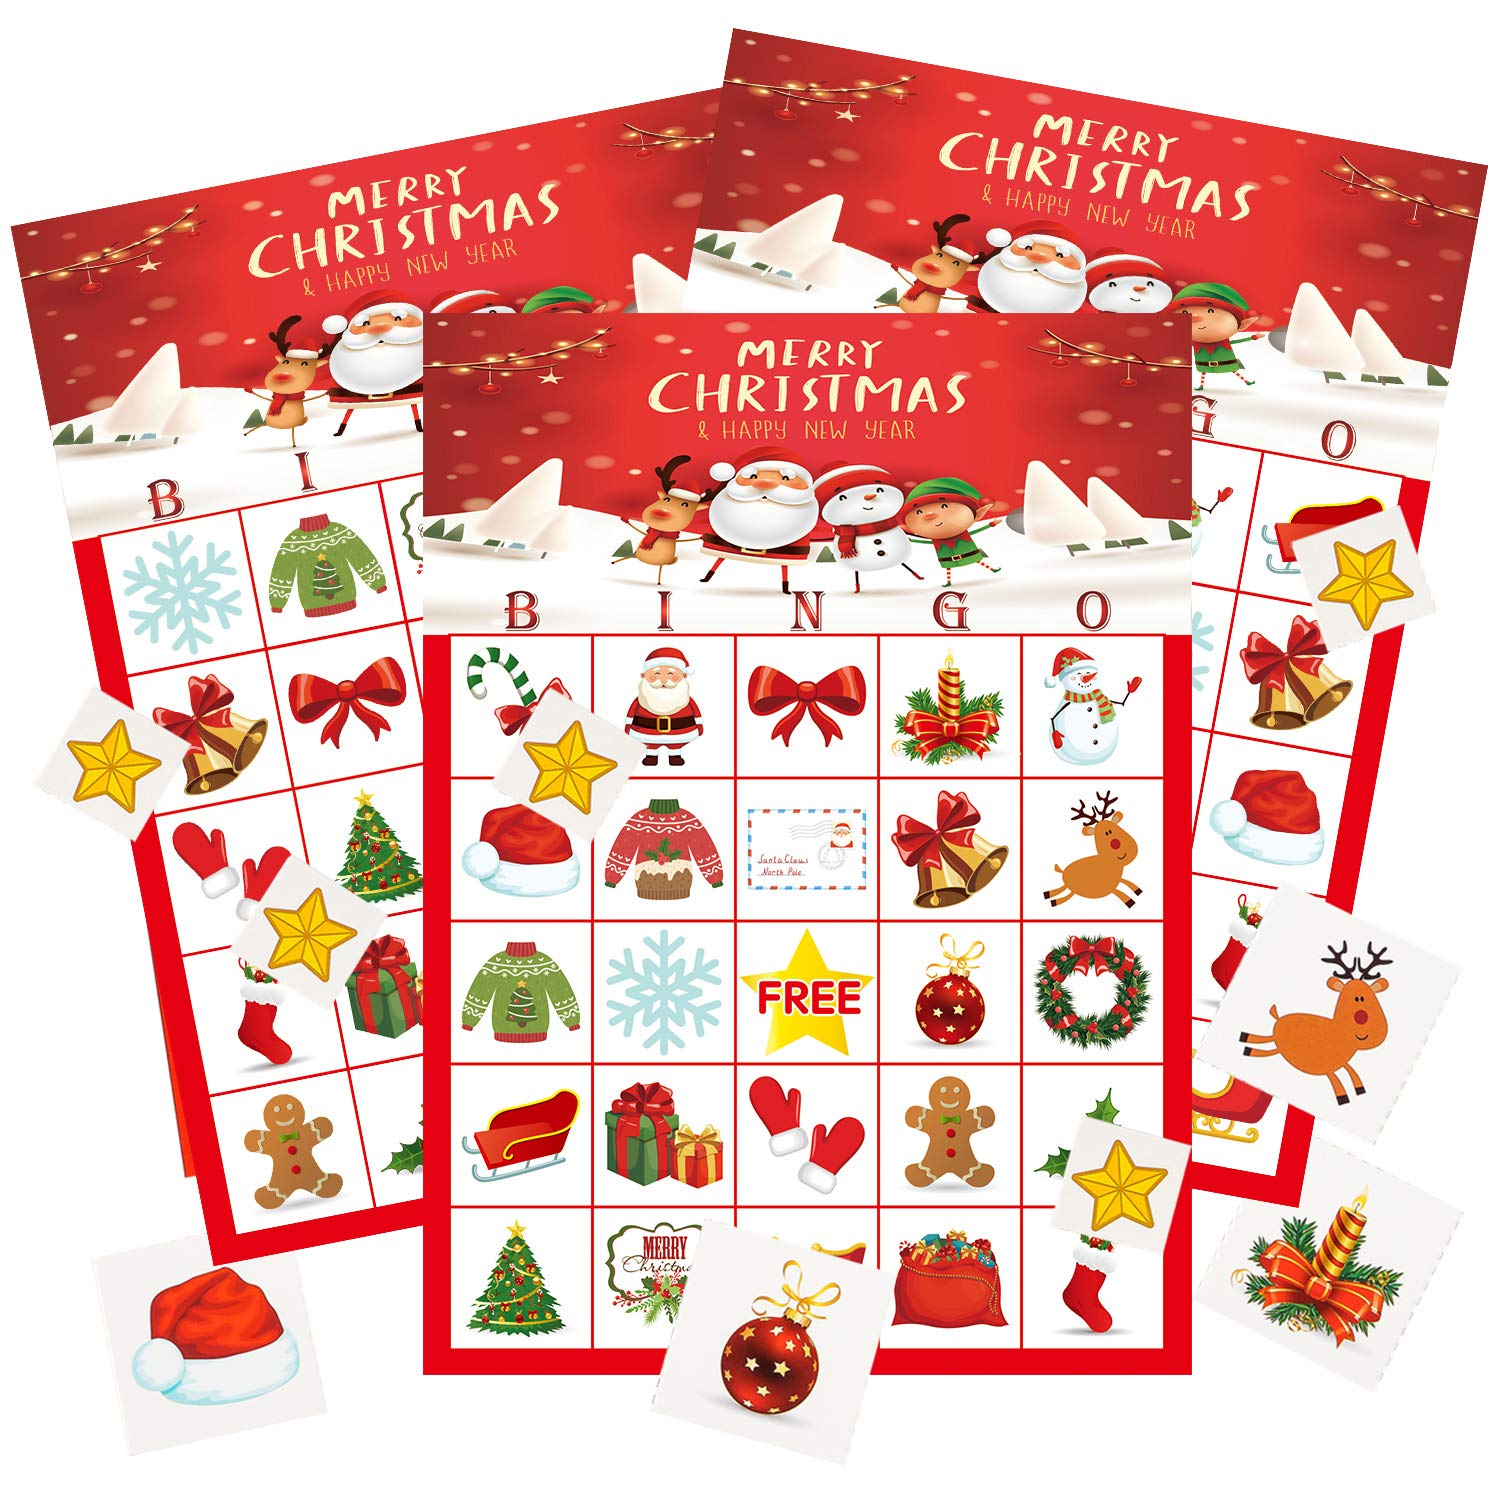 MISS FANTASY Christmas Bingo for Kids Christmas Bingo Game Christmas Party Games for Kids Xmas Activities for Family Christmas Ugly Party Games for 24 Players Xmas Gifts for Kids